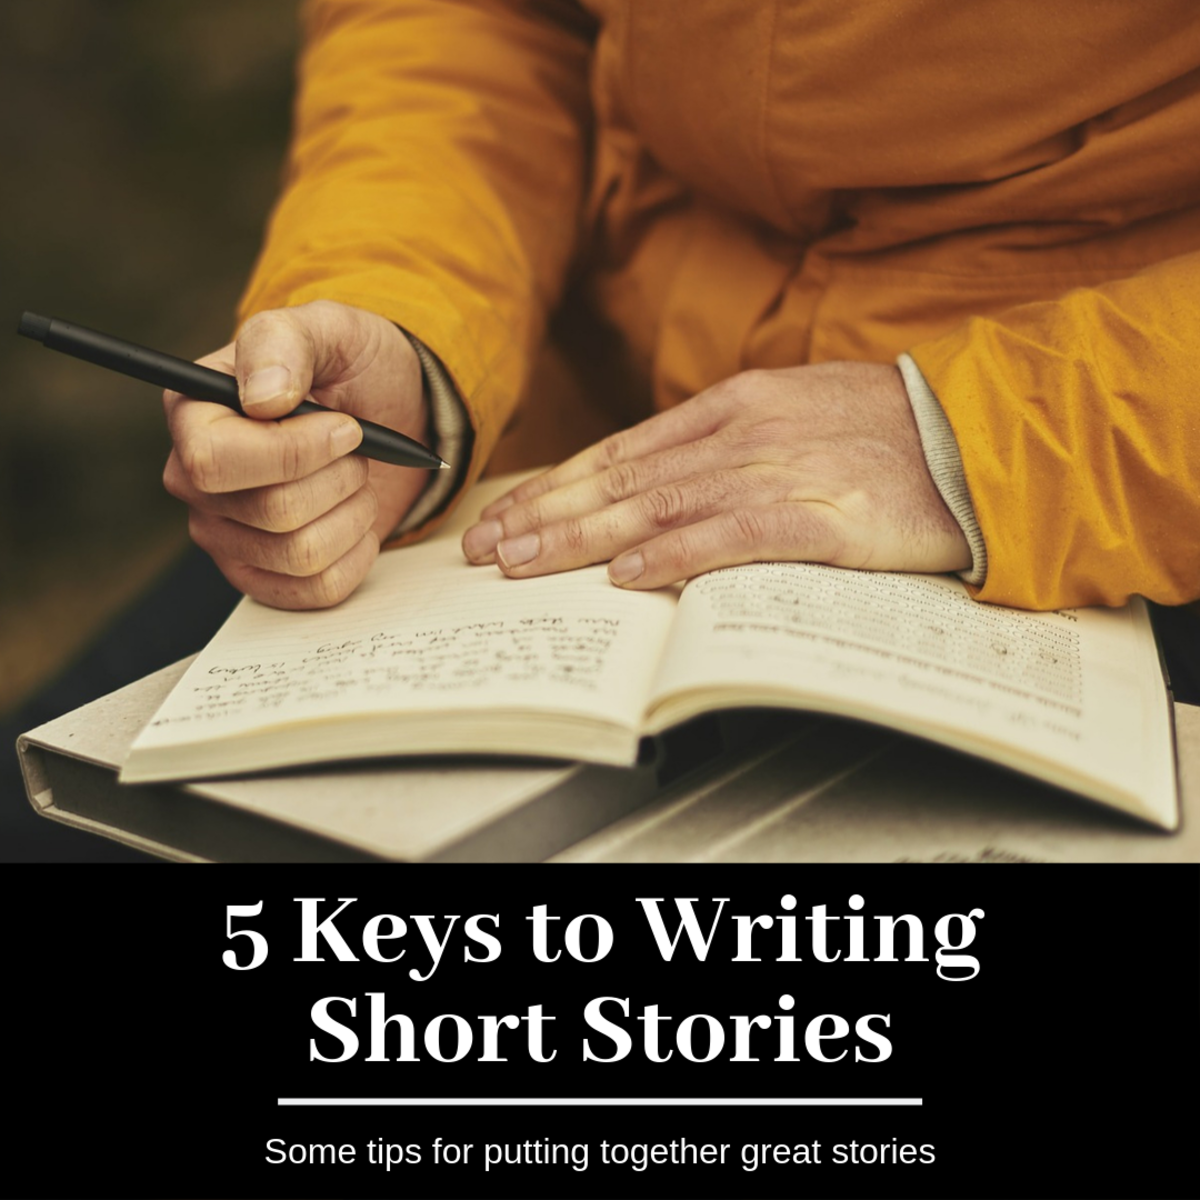 This article will break down five key elements to short story writing and explain why those elements are so important.